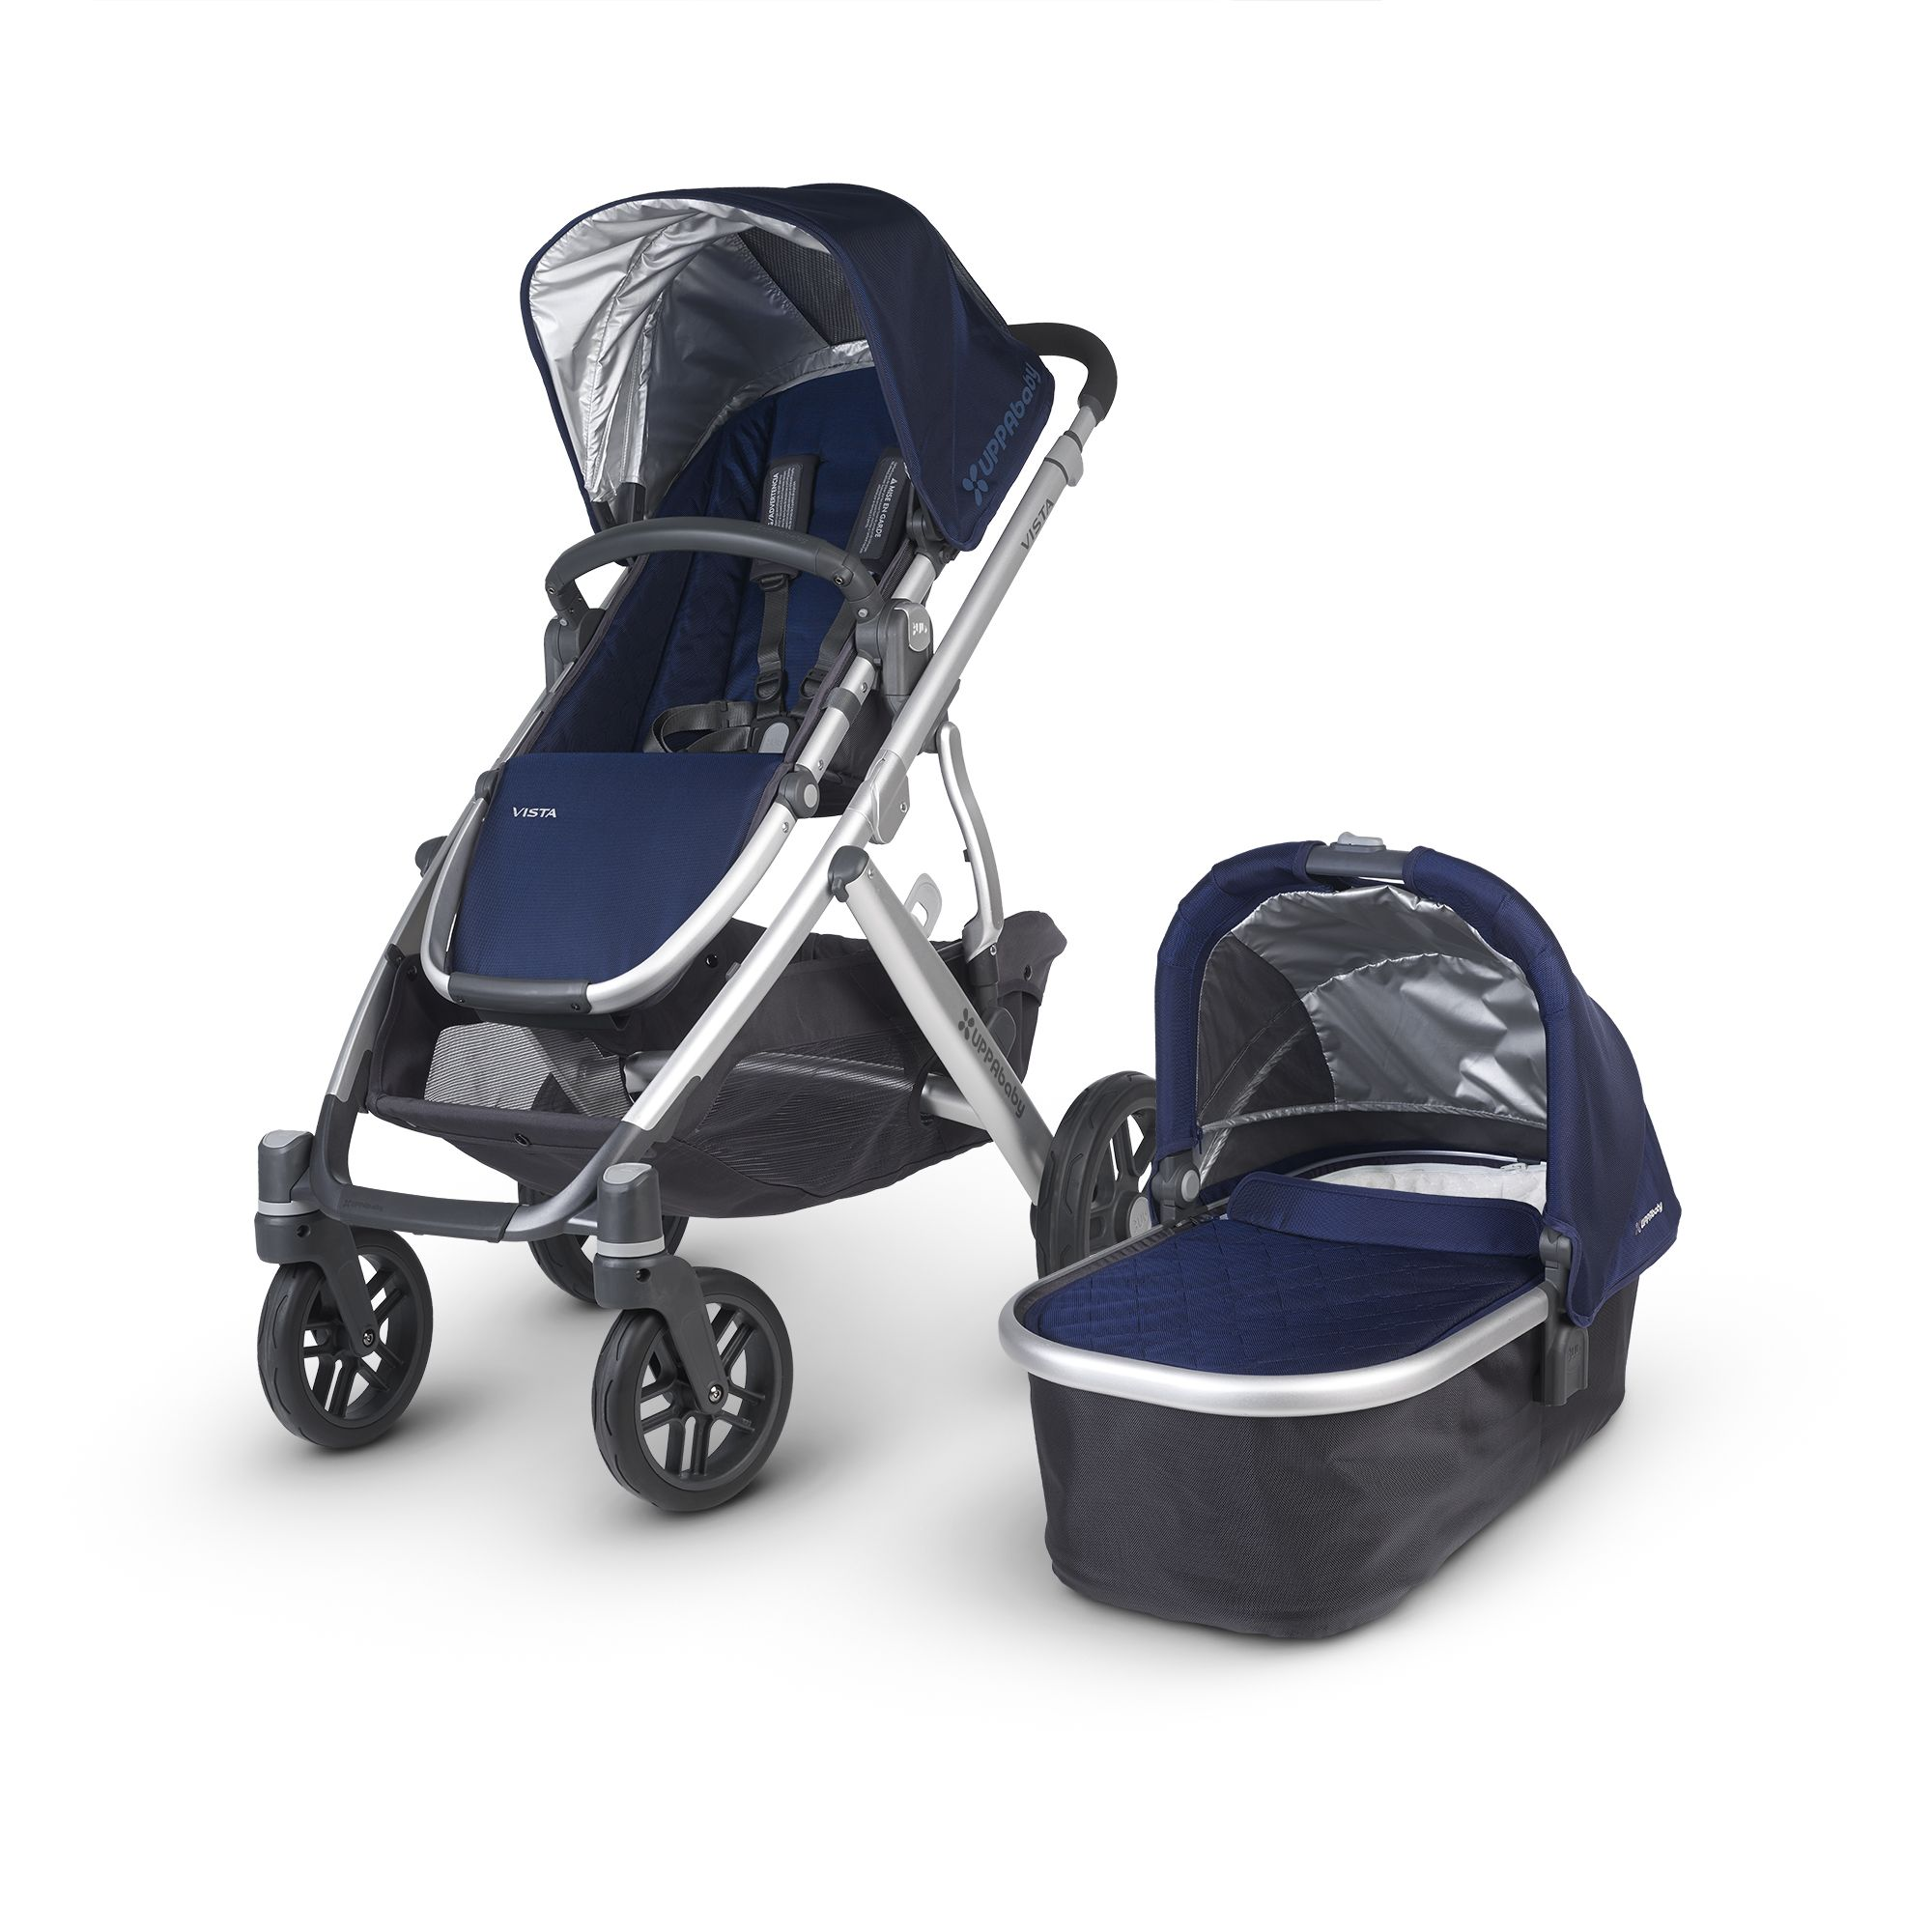 UPPAbaby Vista Stroller. Able to hold your little one